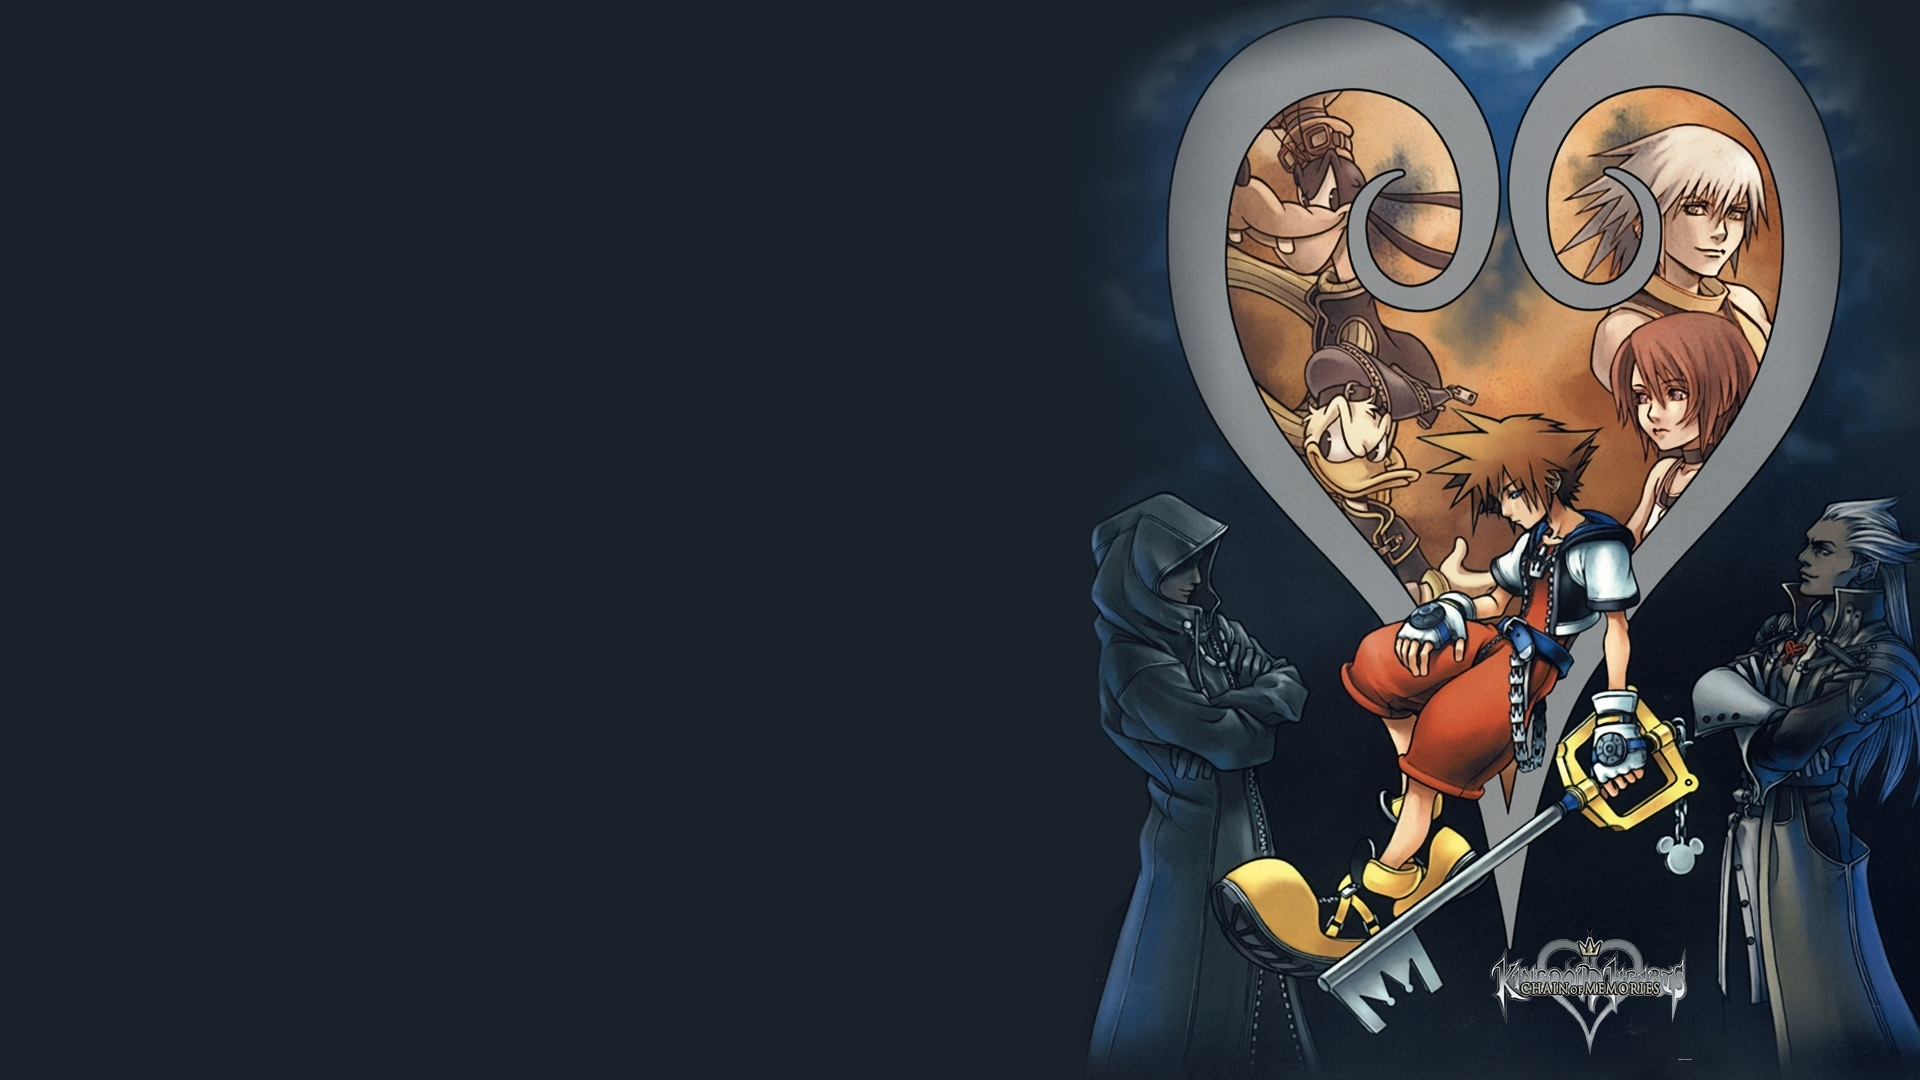 wallpapers kingdom hearts - media file | pixelstalk